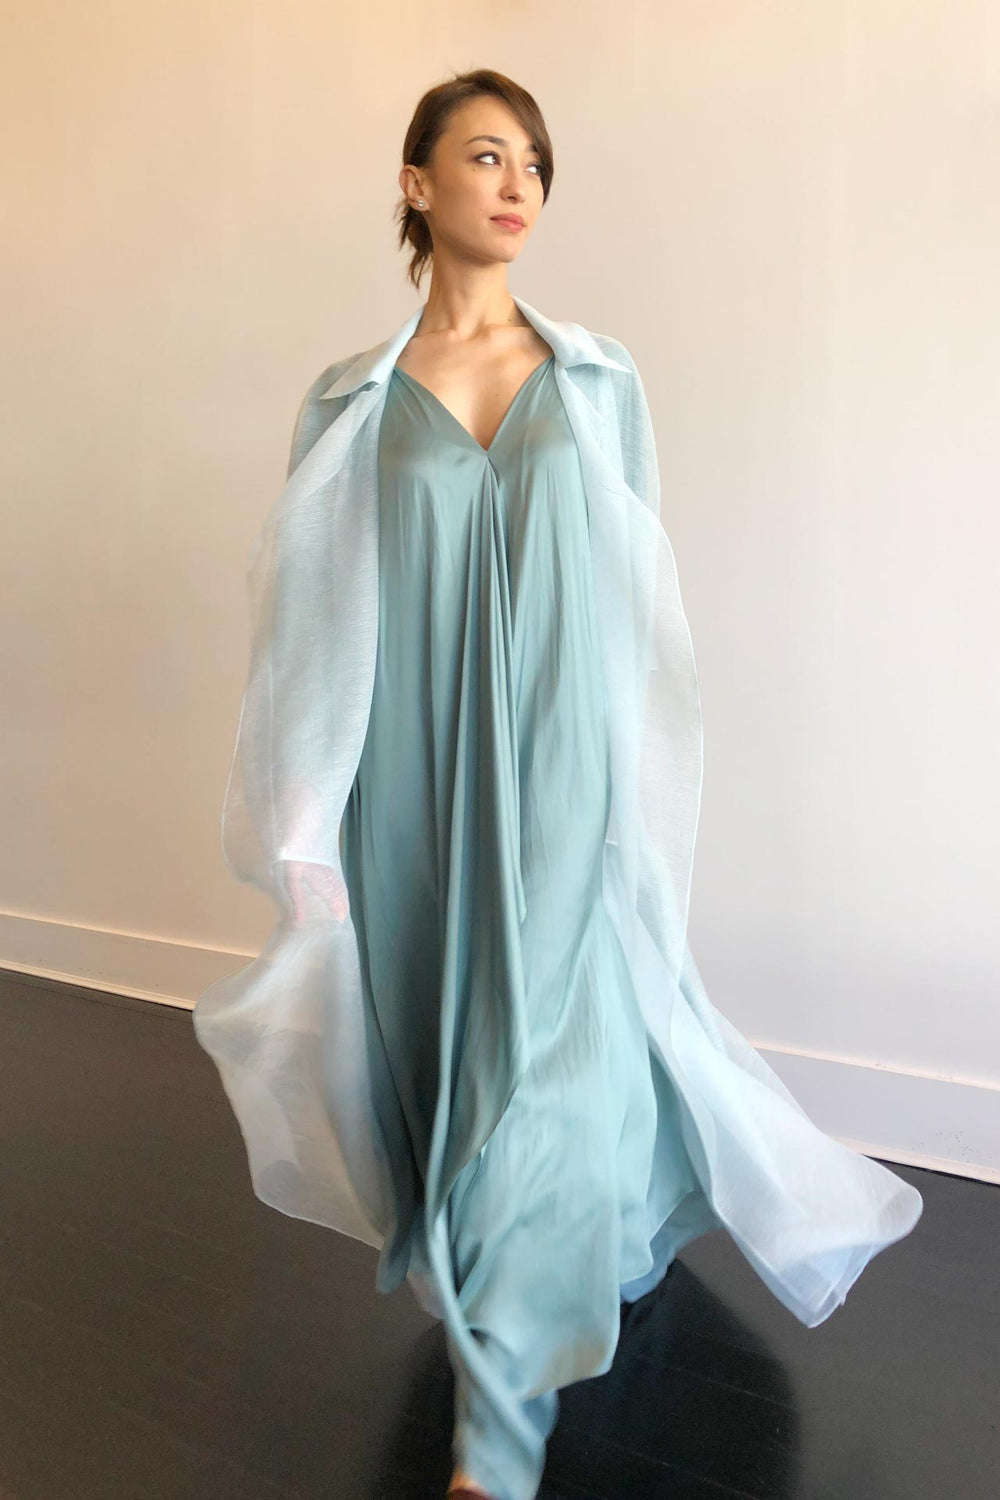 Fashion Designer CARL KAPP collection | Paradise Organza Pale Blue Trench for Formal, cocktail | Sydney Australia